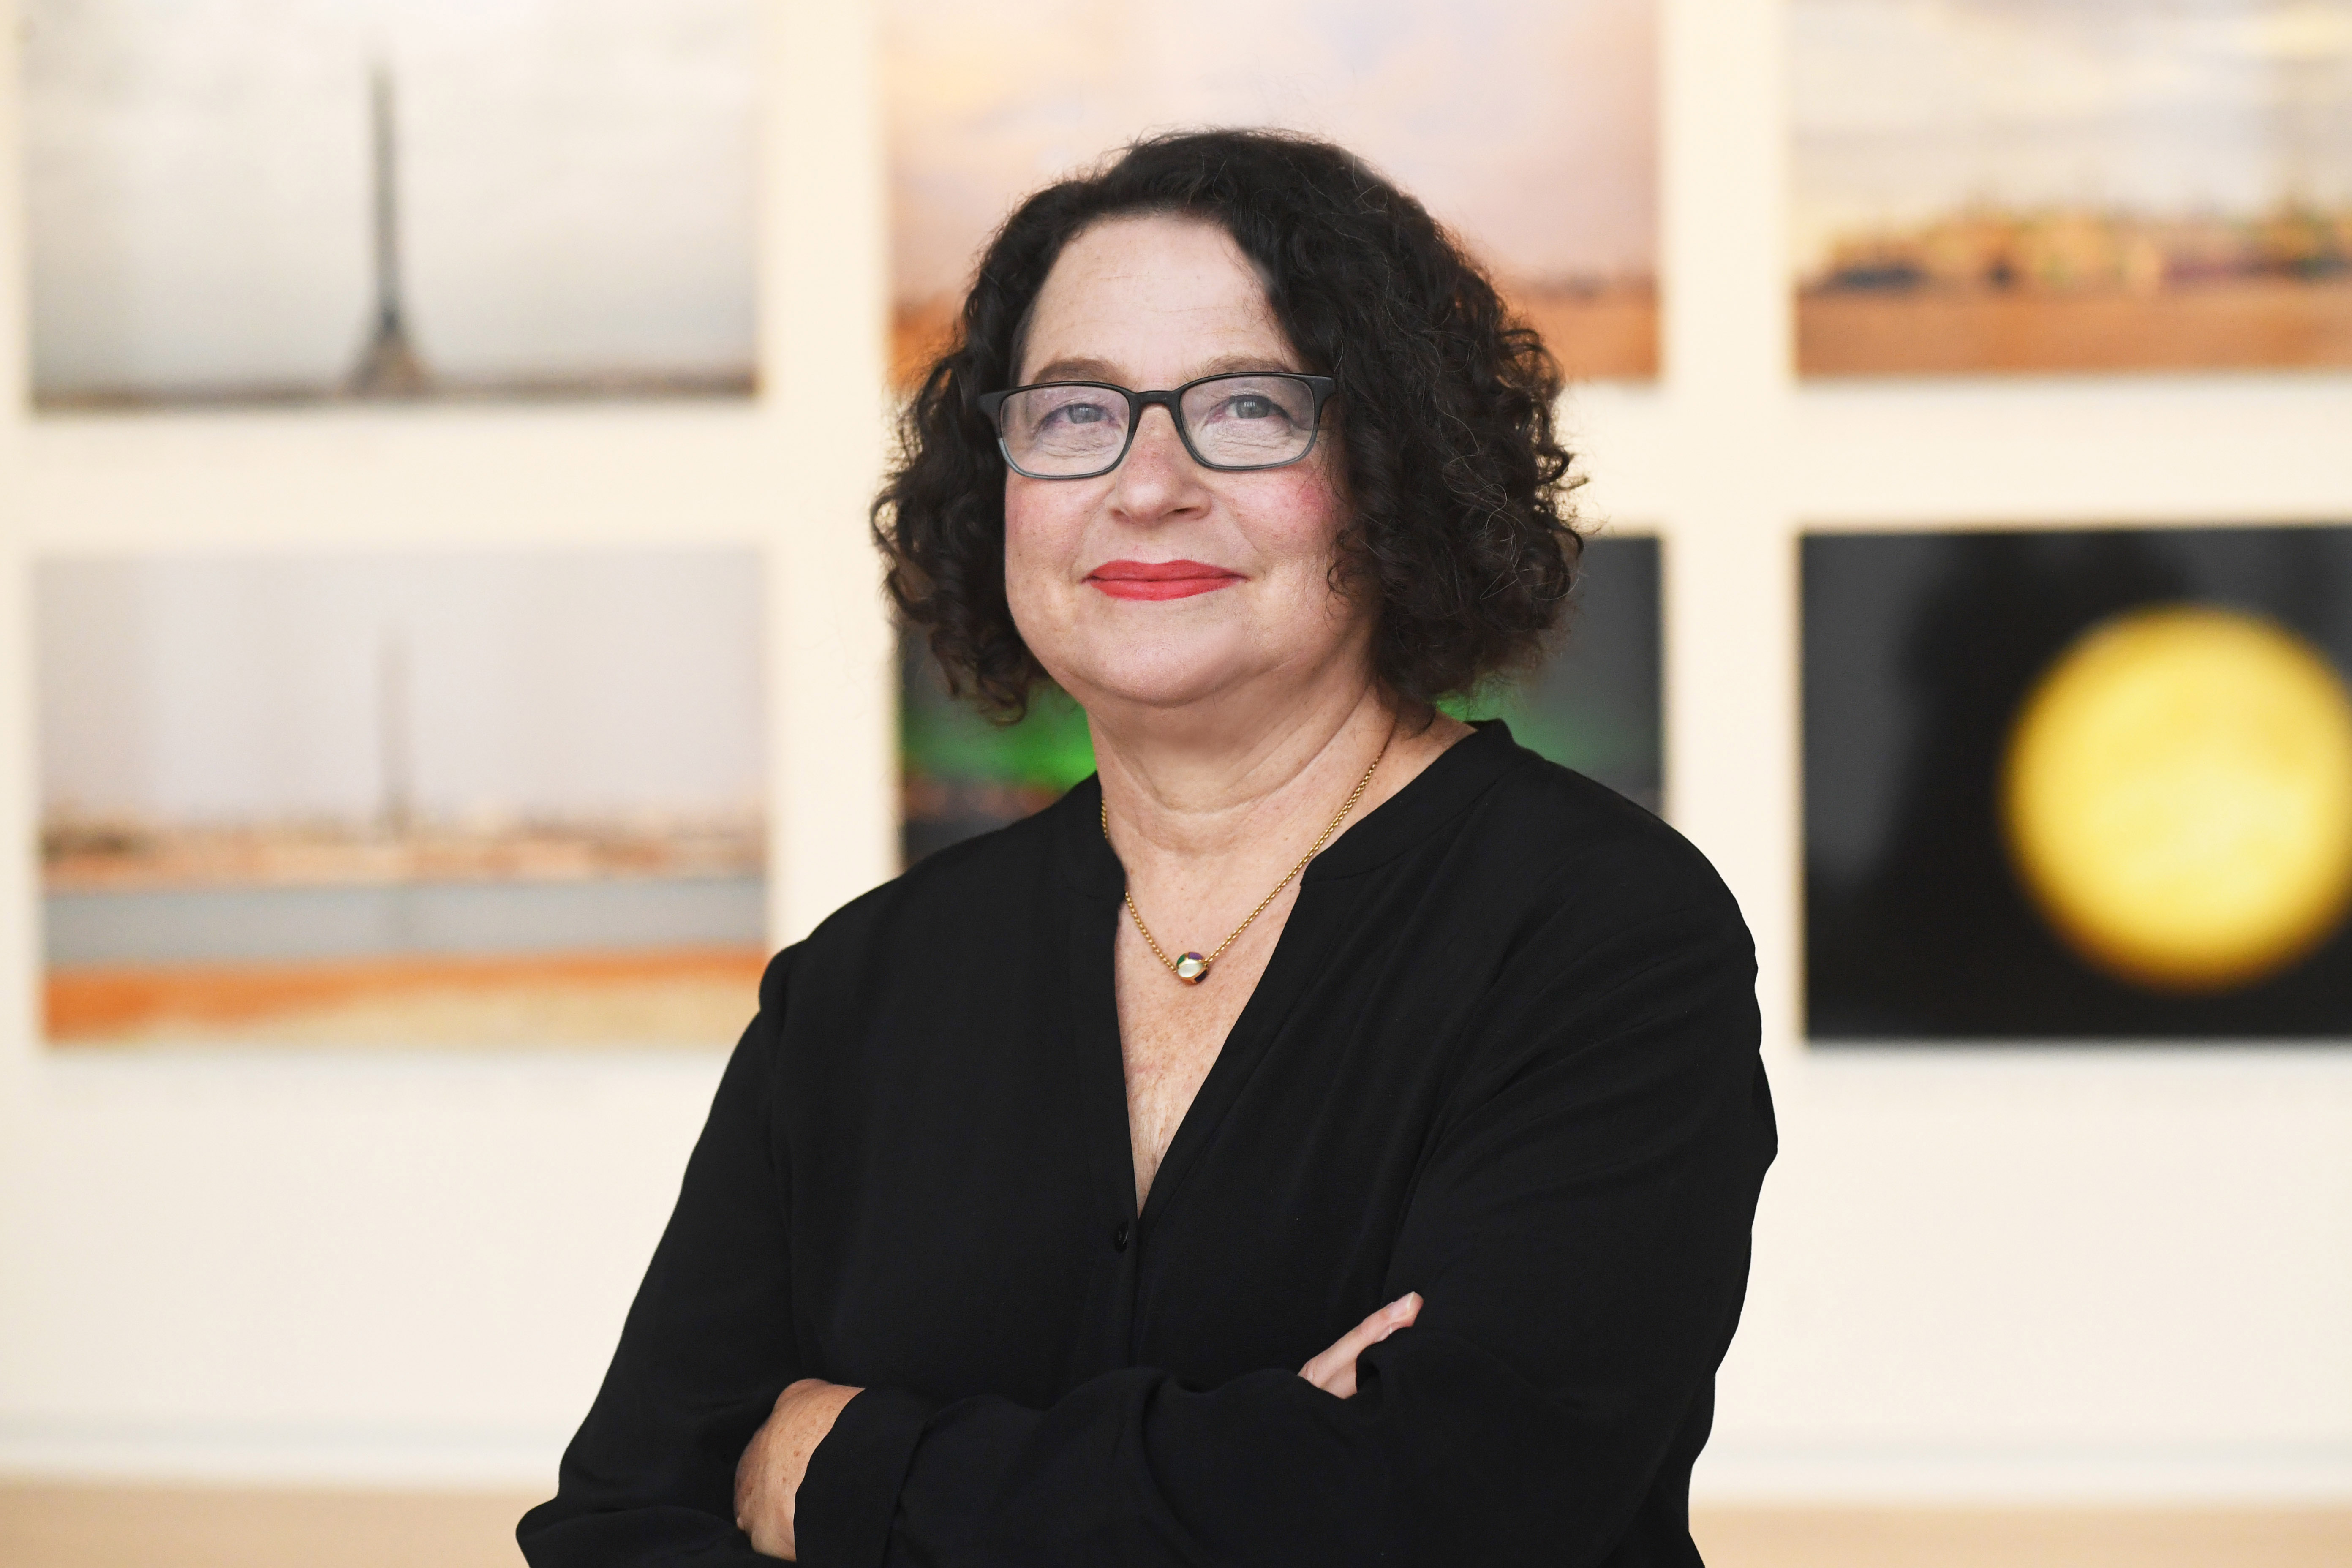 Columbia Taps New Gallery Director: Betti-Sue Hertz on Her Plans for the Closely Watched Space